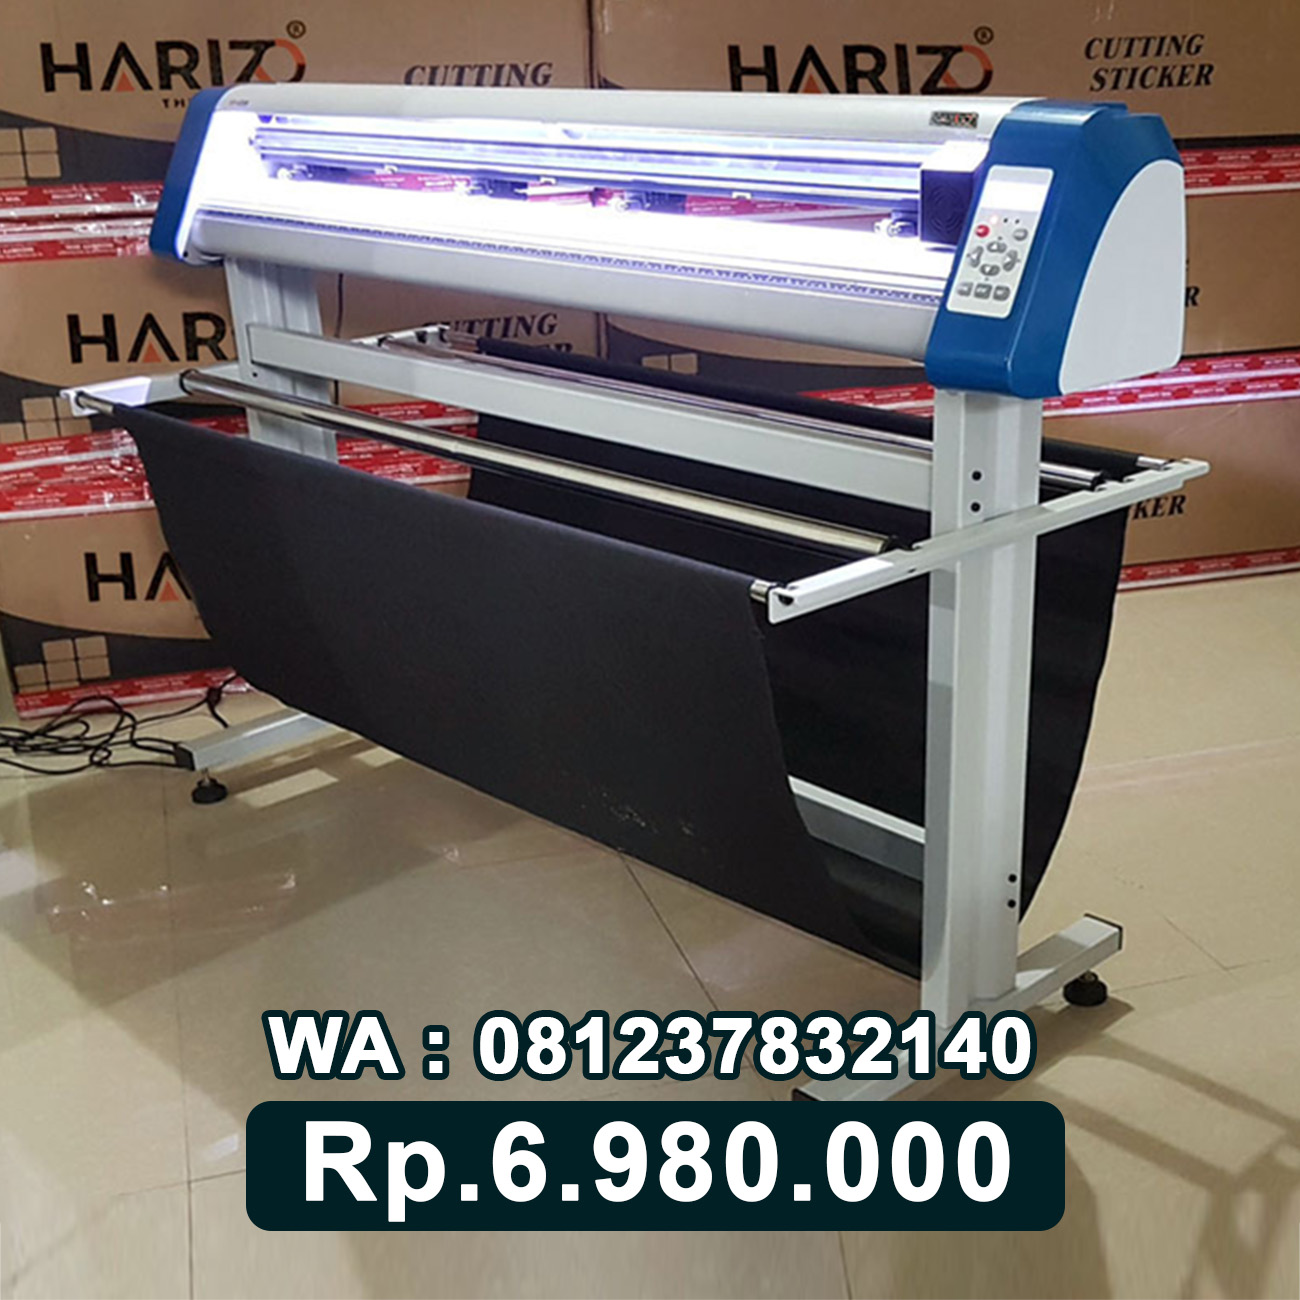 JUAL MESIN CUTTING STICKER HARIZO 1350 Tanjung Selor